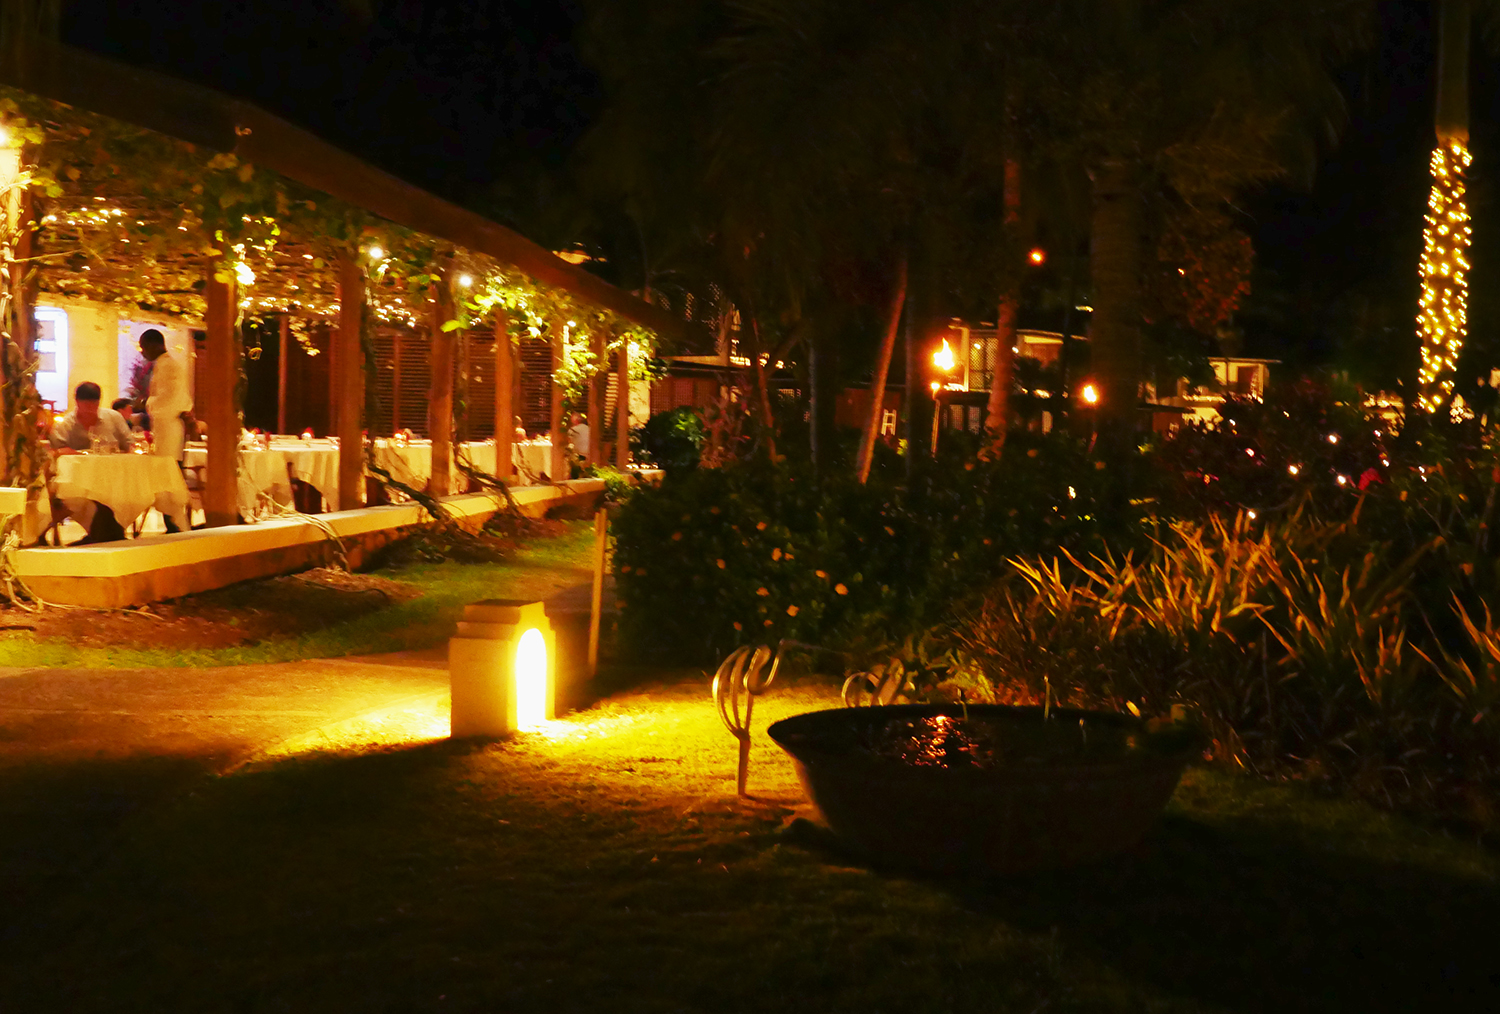 Calabash Hotel Grenada - Restaurant at Night2